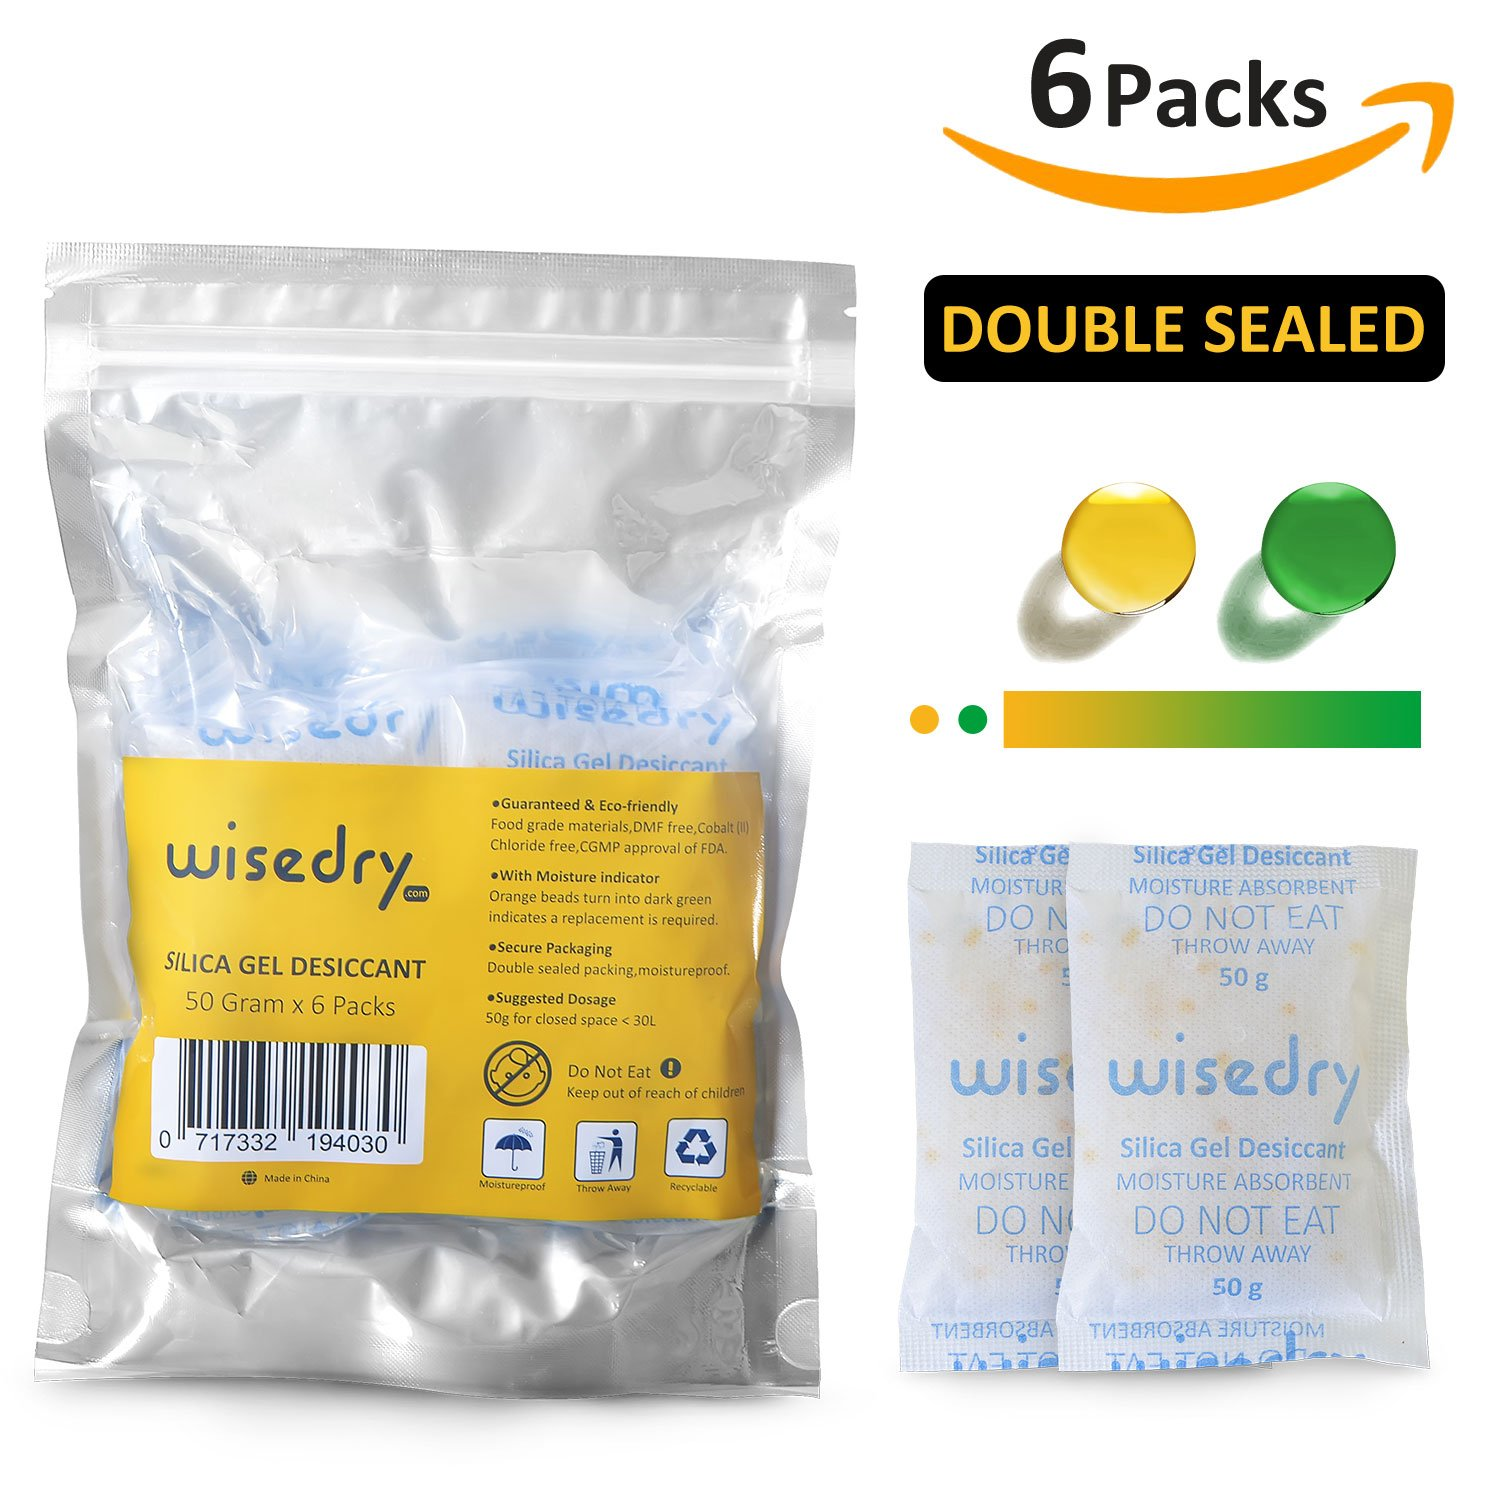 10 Gram x 30 Packs Silica Gel Sachets Bags with Orange Beads Humidity Indicator Moisture Absorber for Air Dryer Moisture Removal, Food Grade Viola Technology Limited